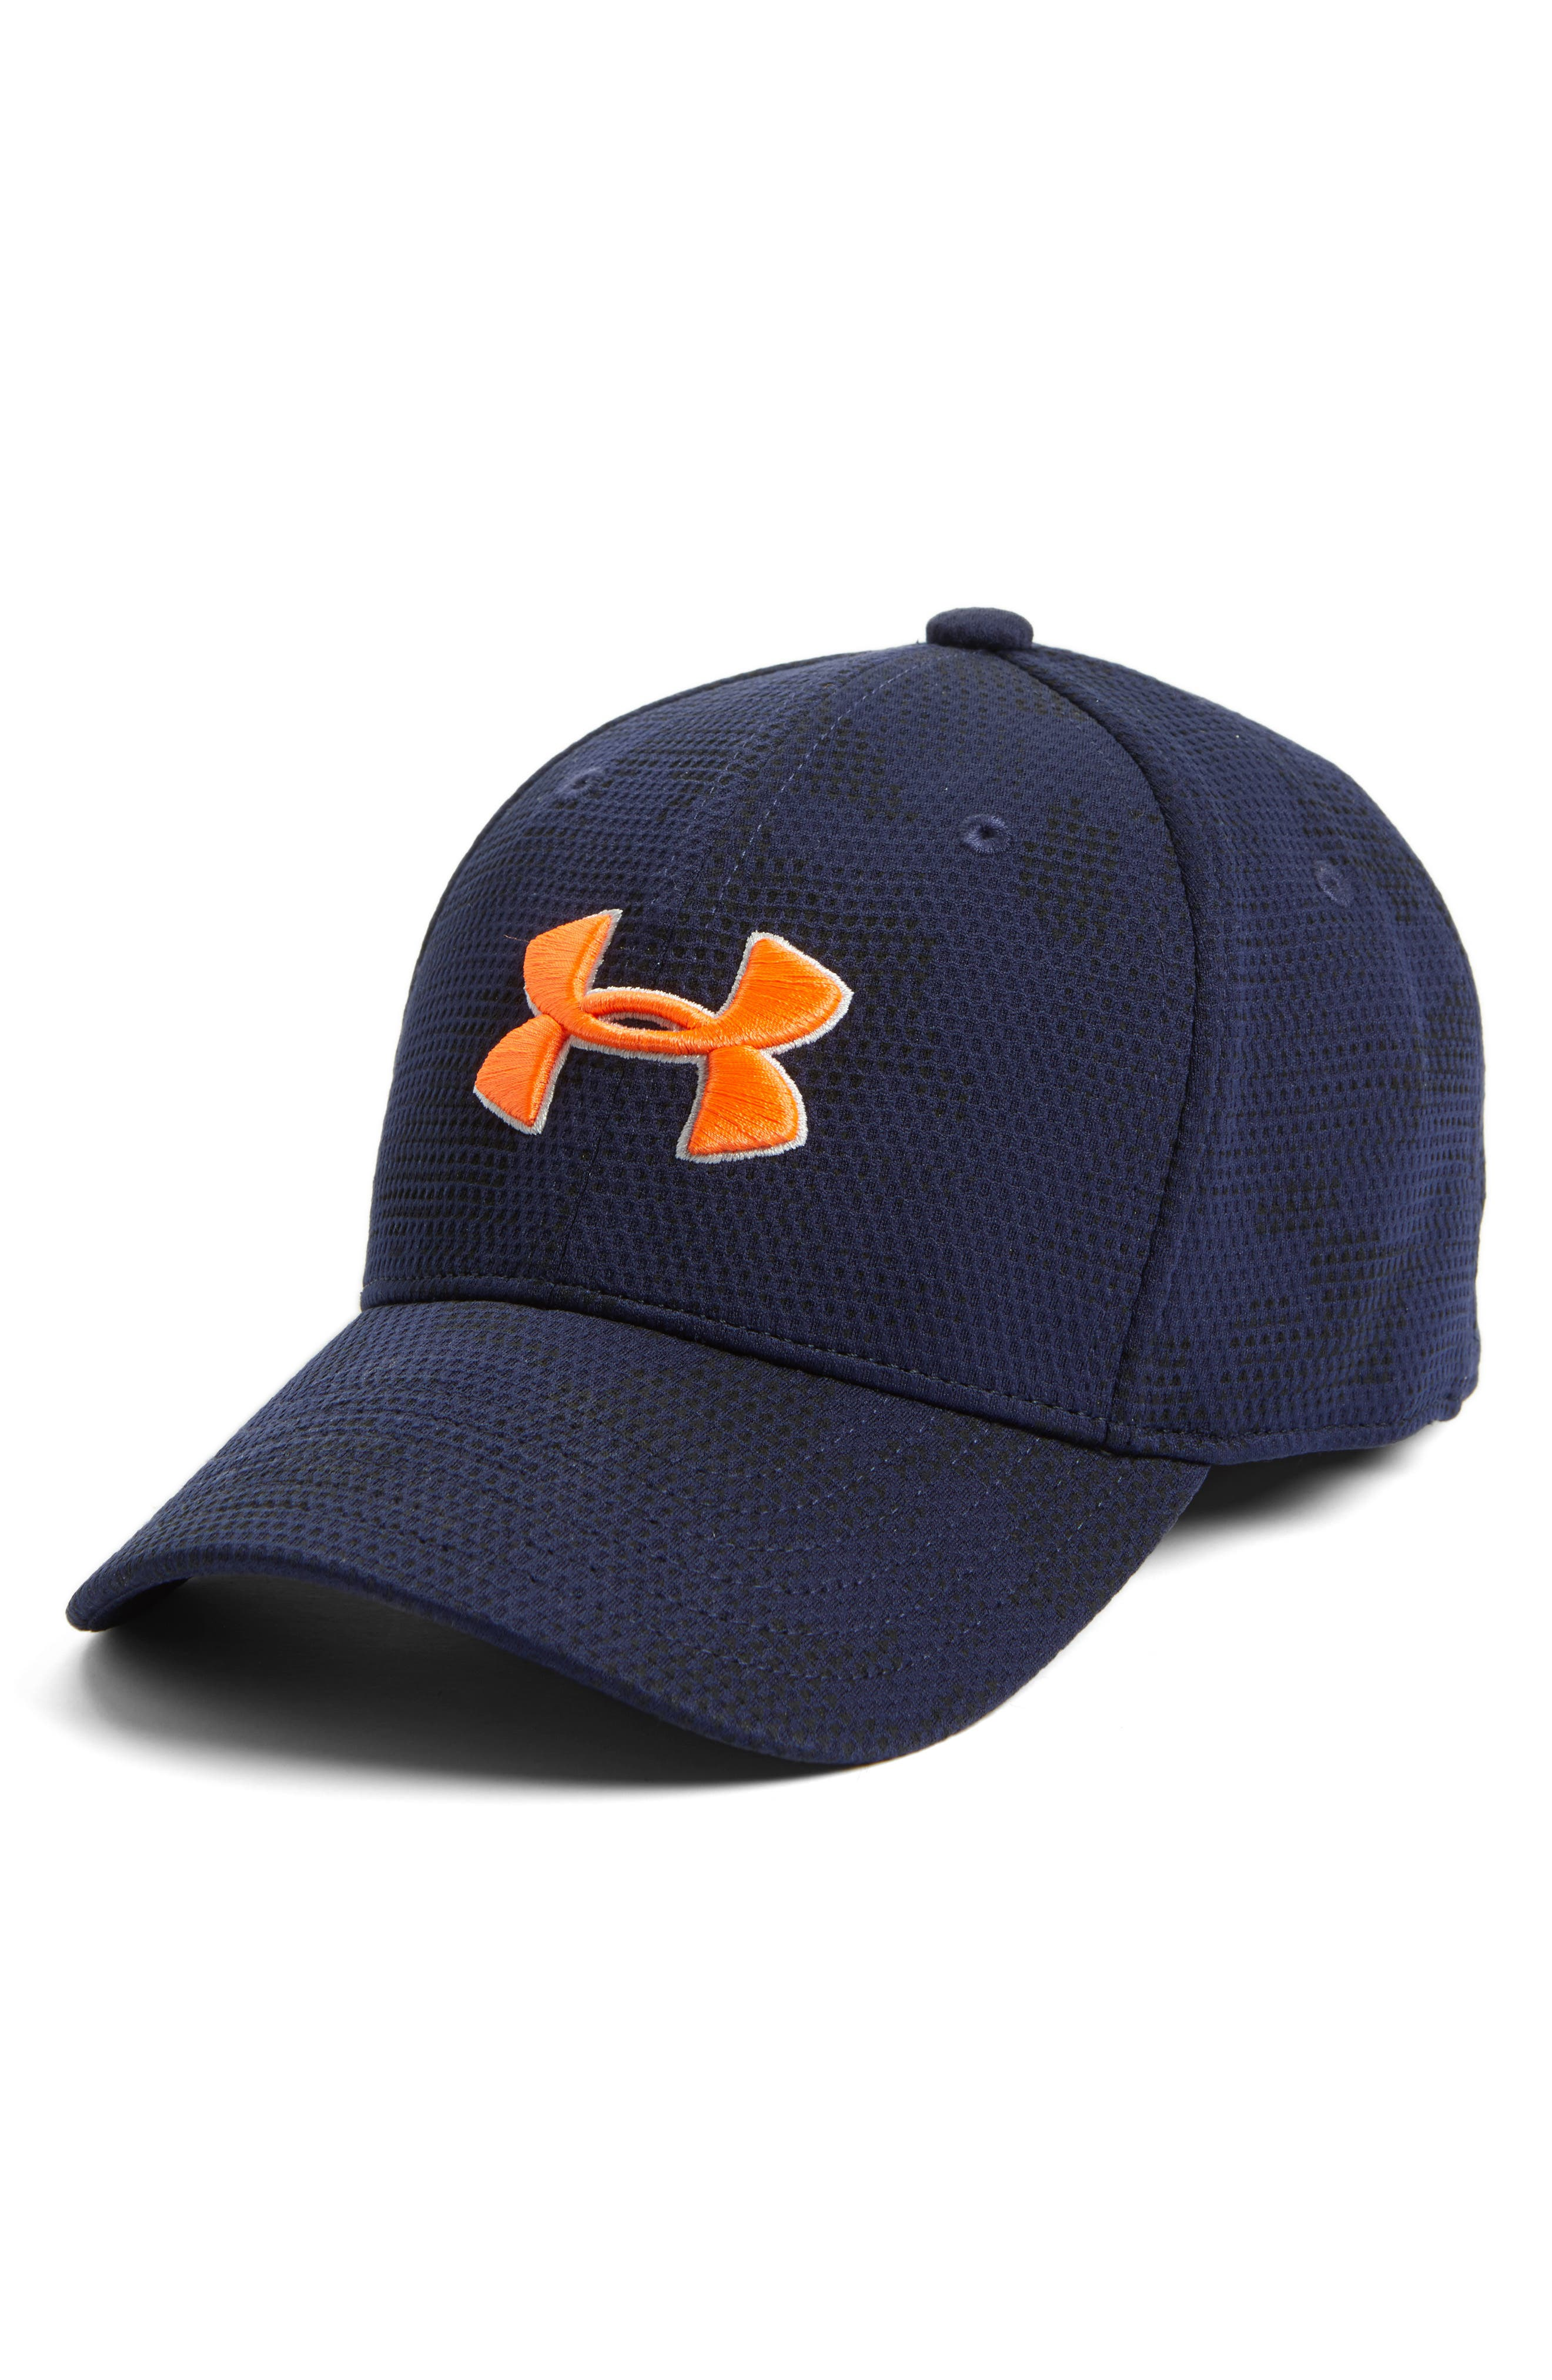 Under Armour 'Blitzing' Stretch Fit Baseball Cap (Boys)